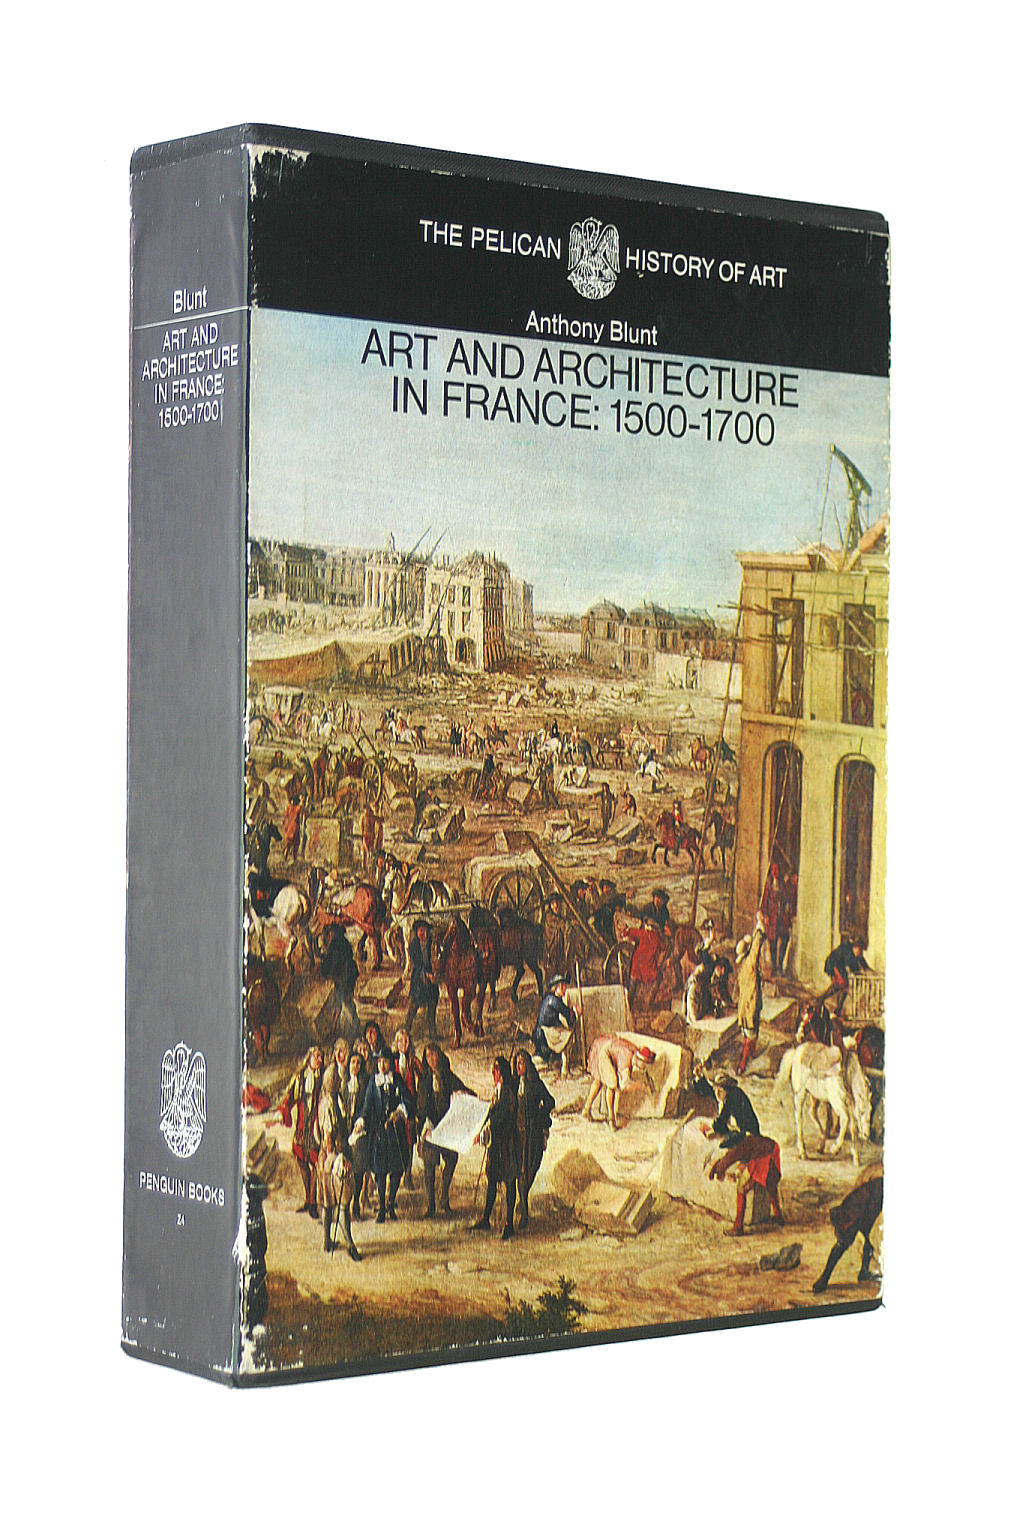 Image for Art and Architecture in France 1500-1700, [The Pelican History of Art Z4]